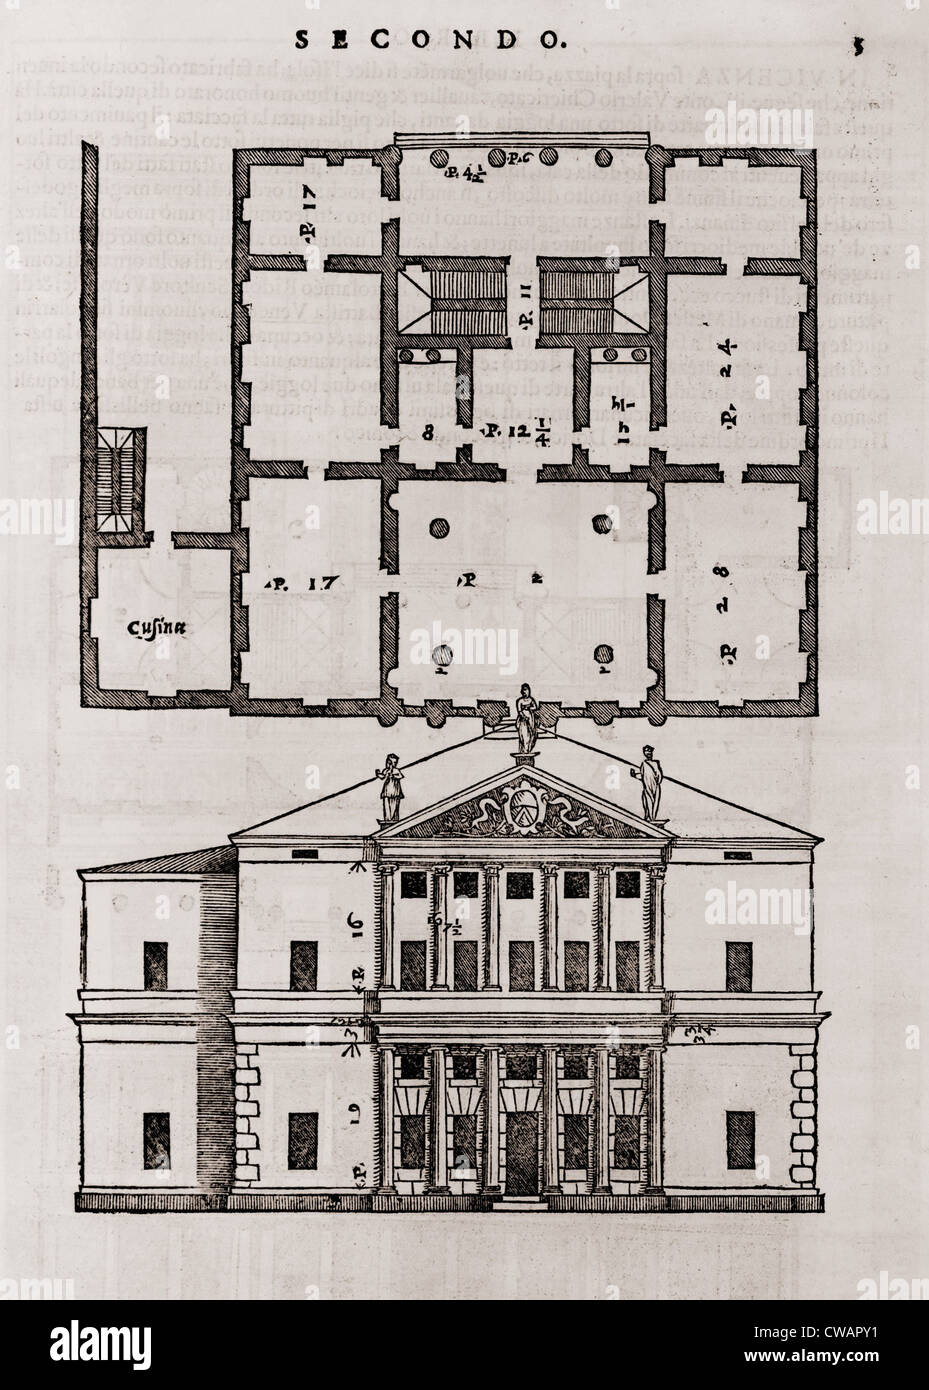 Elevation From Plan : Floor plan and elevation of a classical style house from